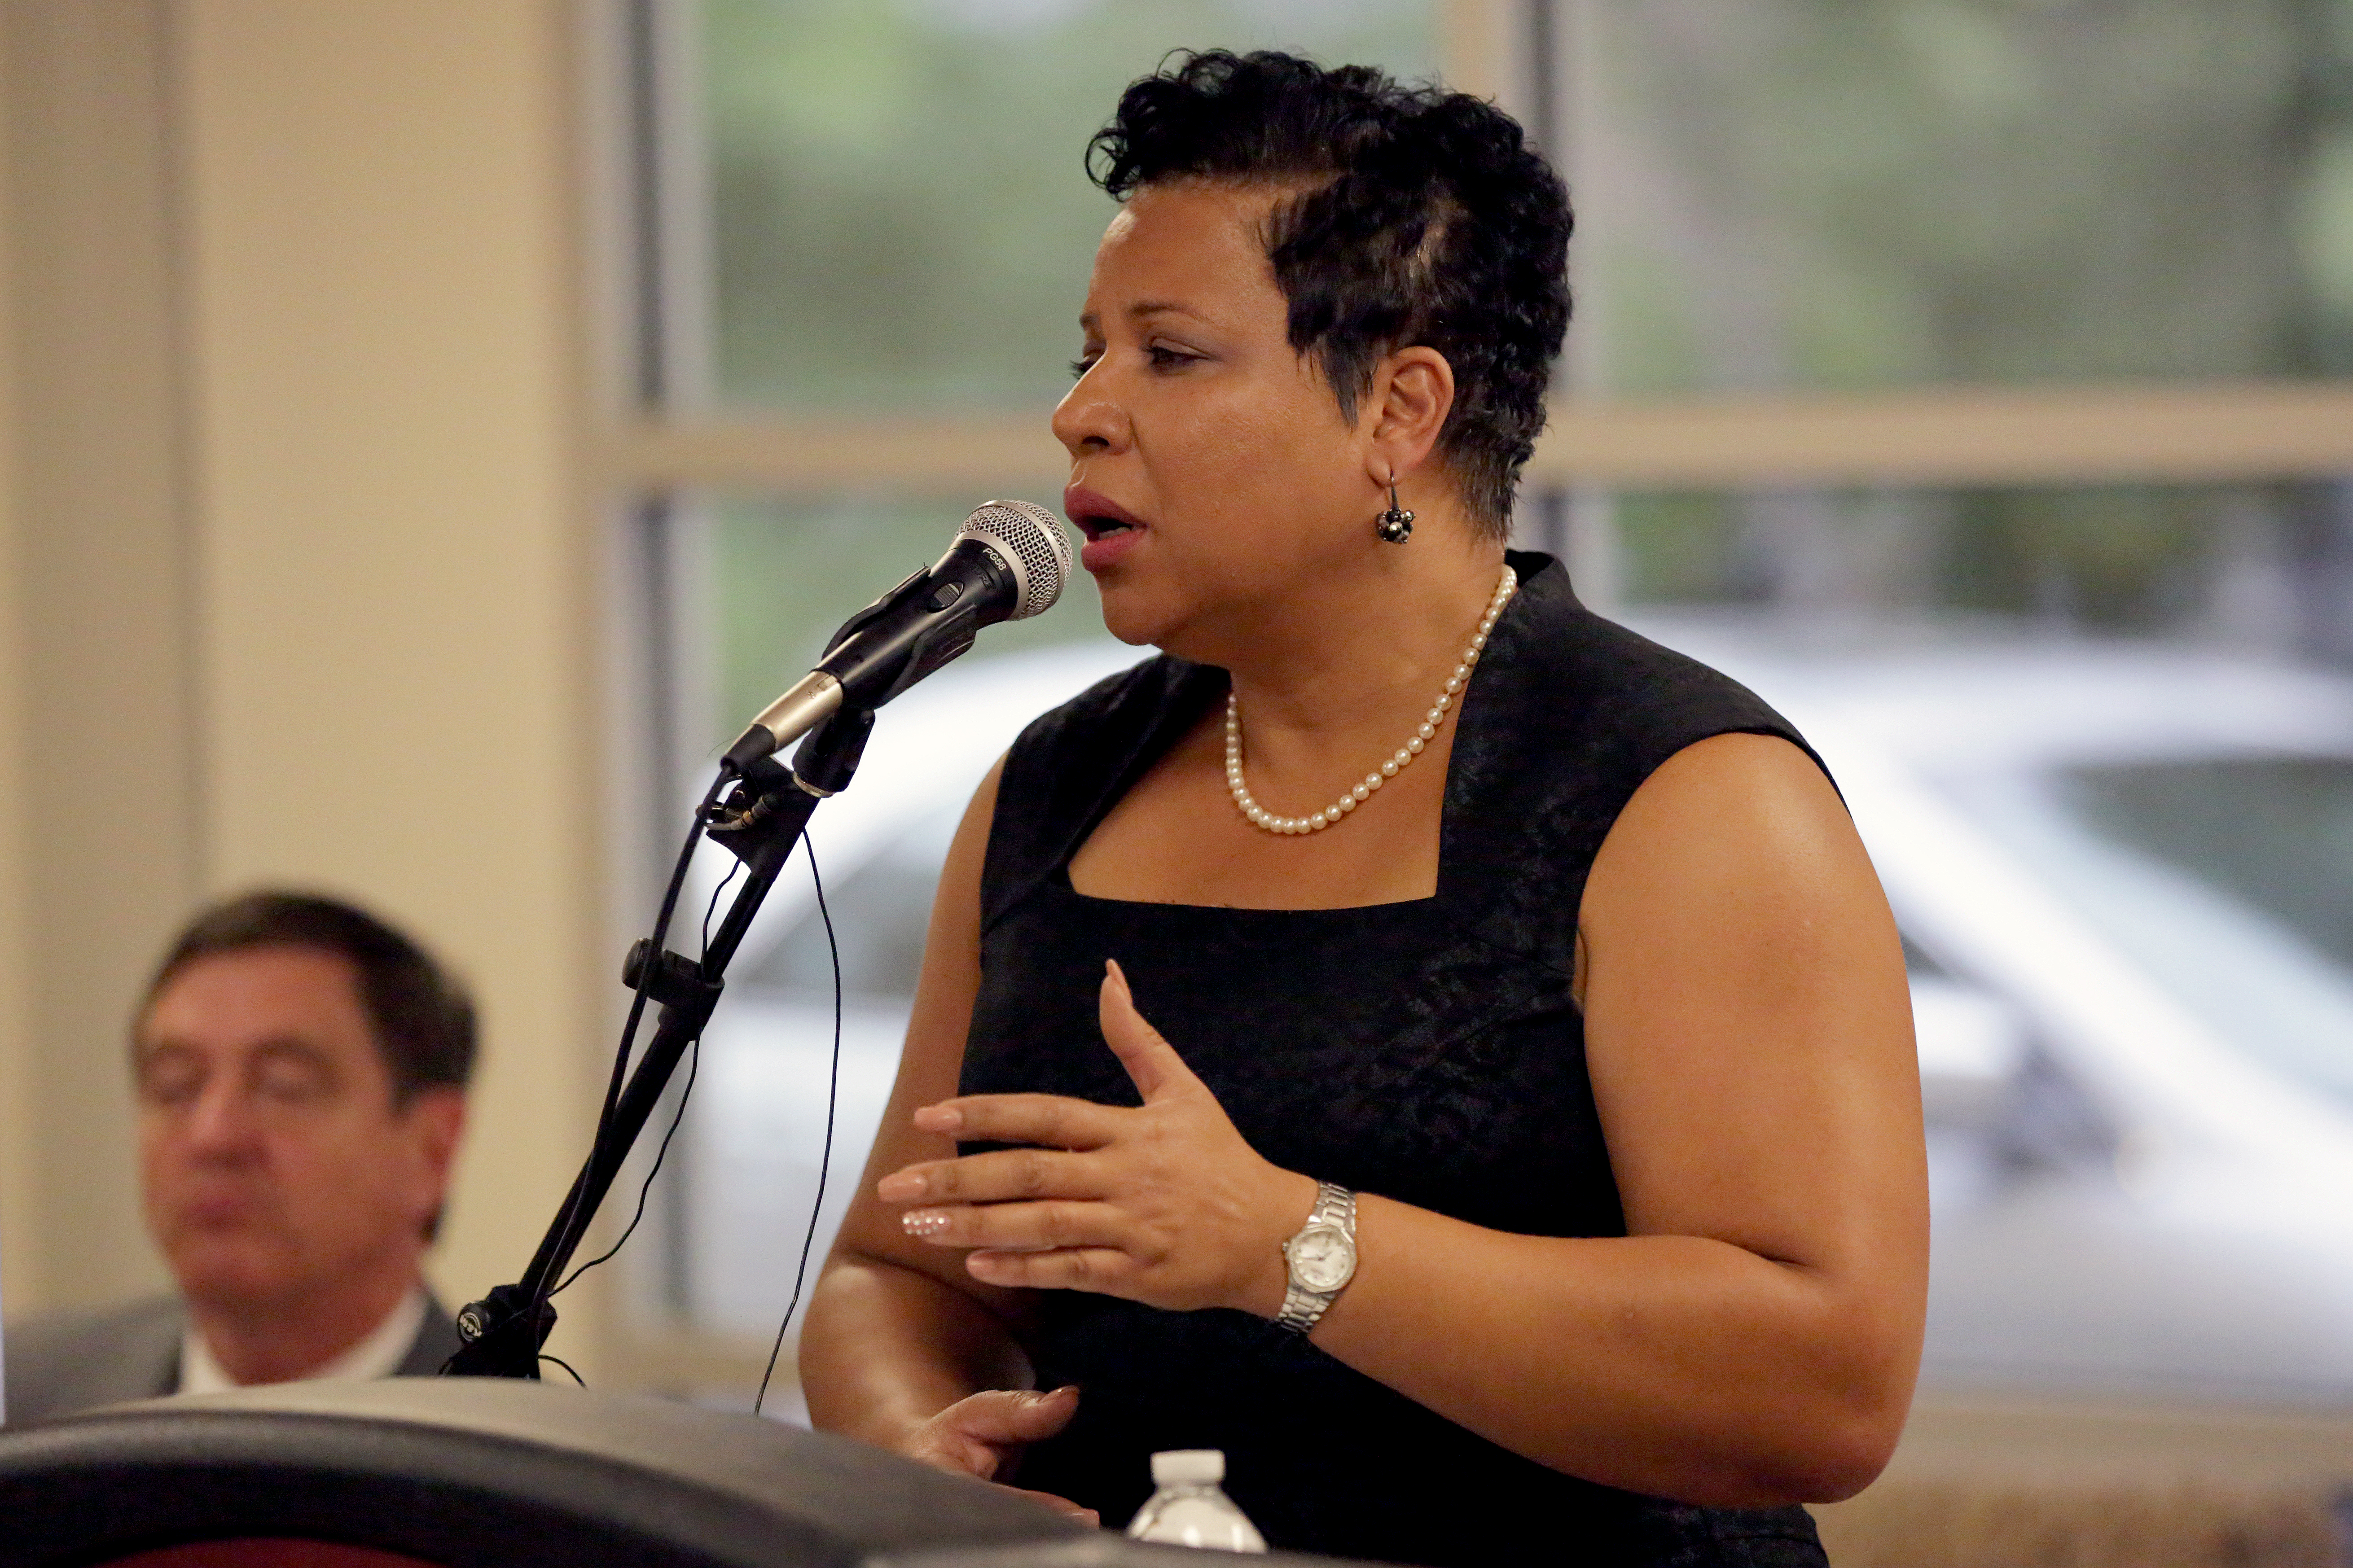 Stephanie O'Malley, director of safety for the City of Denver, speaks at a forum about reforms to the Denver Sheriff Department on Tuesday, June 30, 2015 in Park Hill.